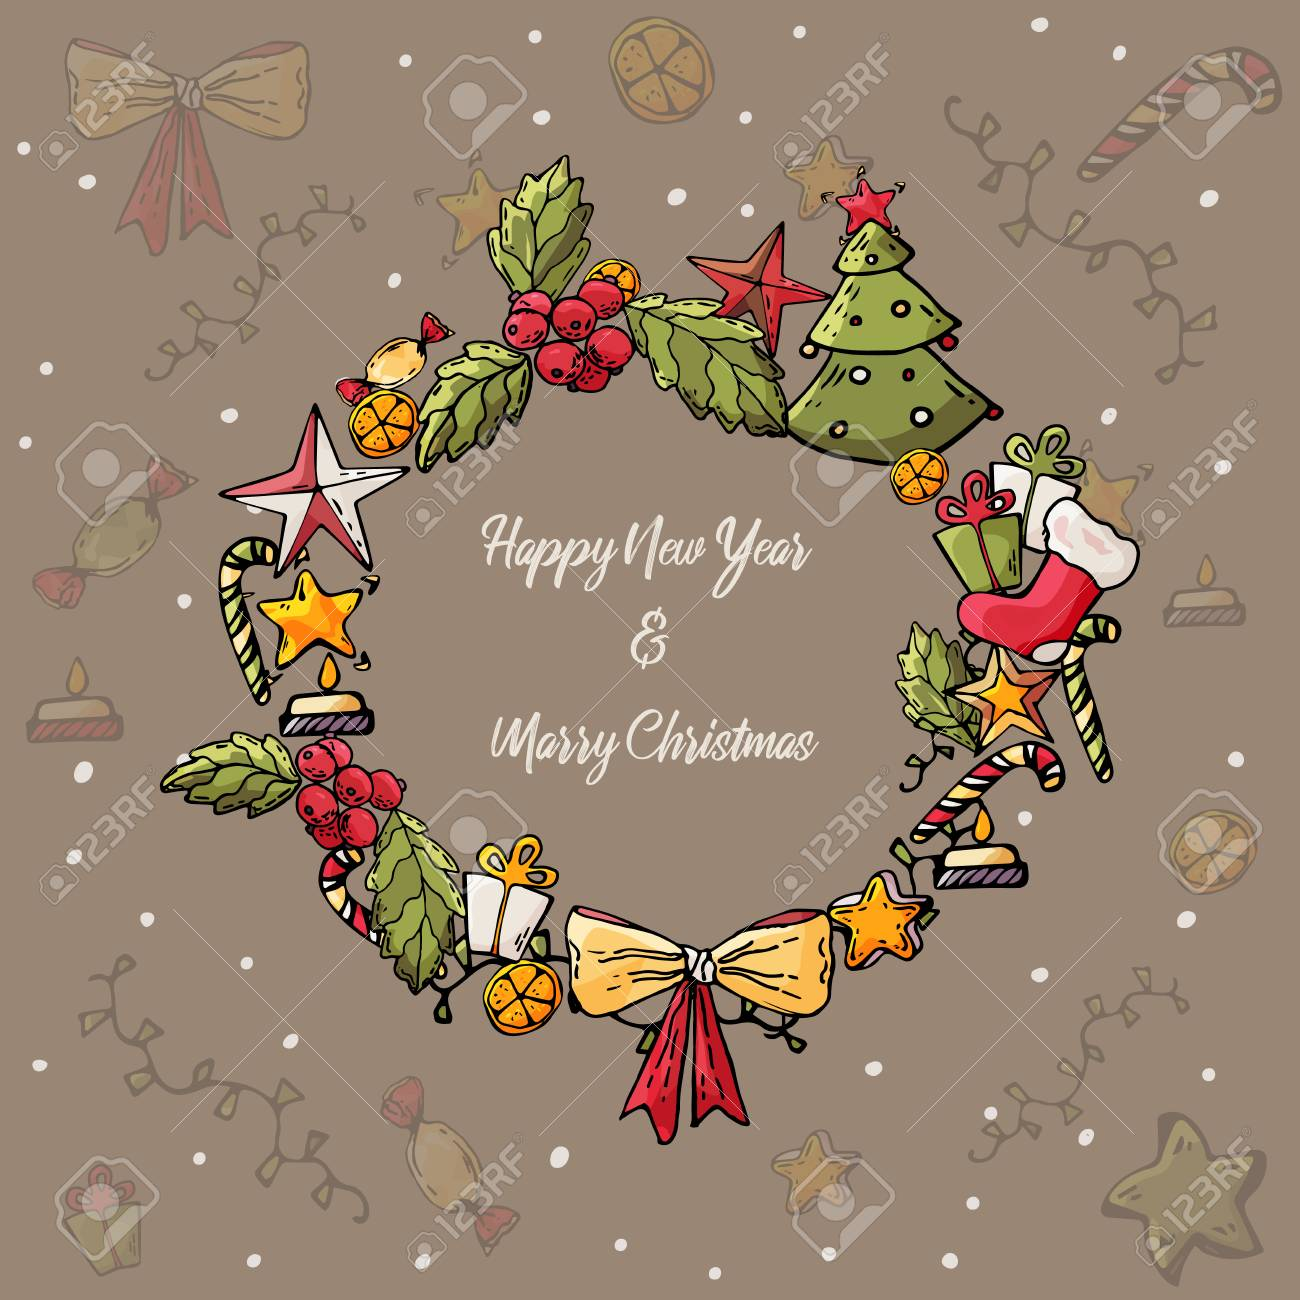 Merry Christmas And Happy New Year Card Christmas Wreath With